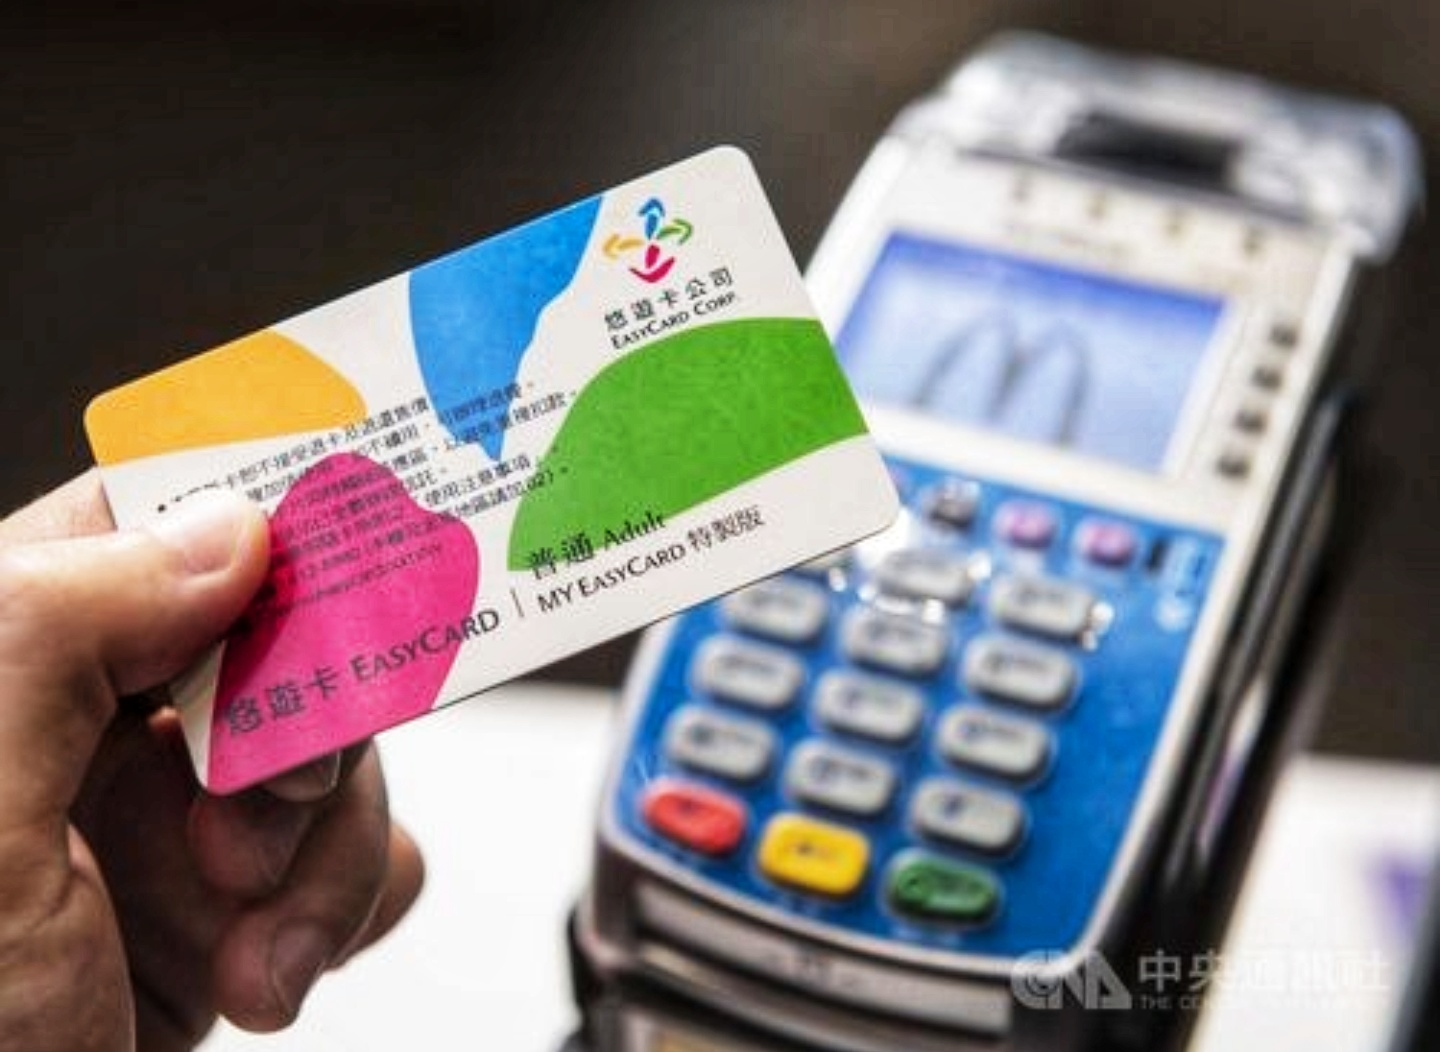 mcdonalds in taiwan now accept electronic payment cards